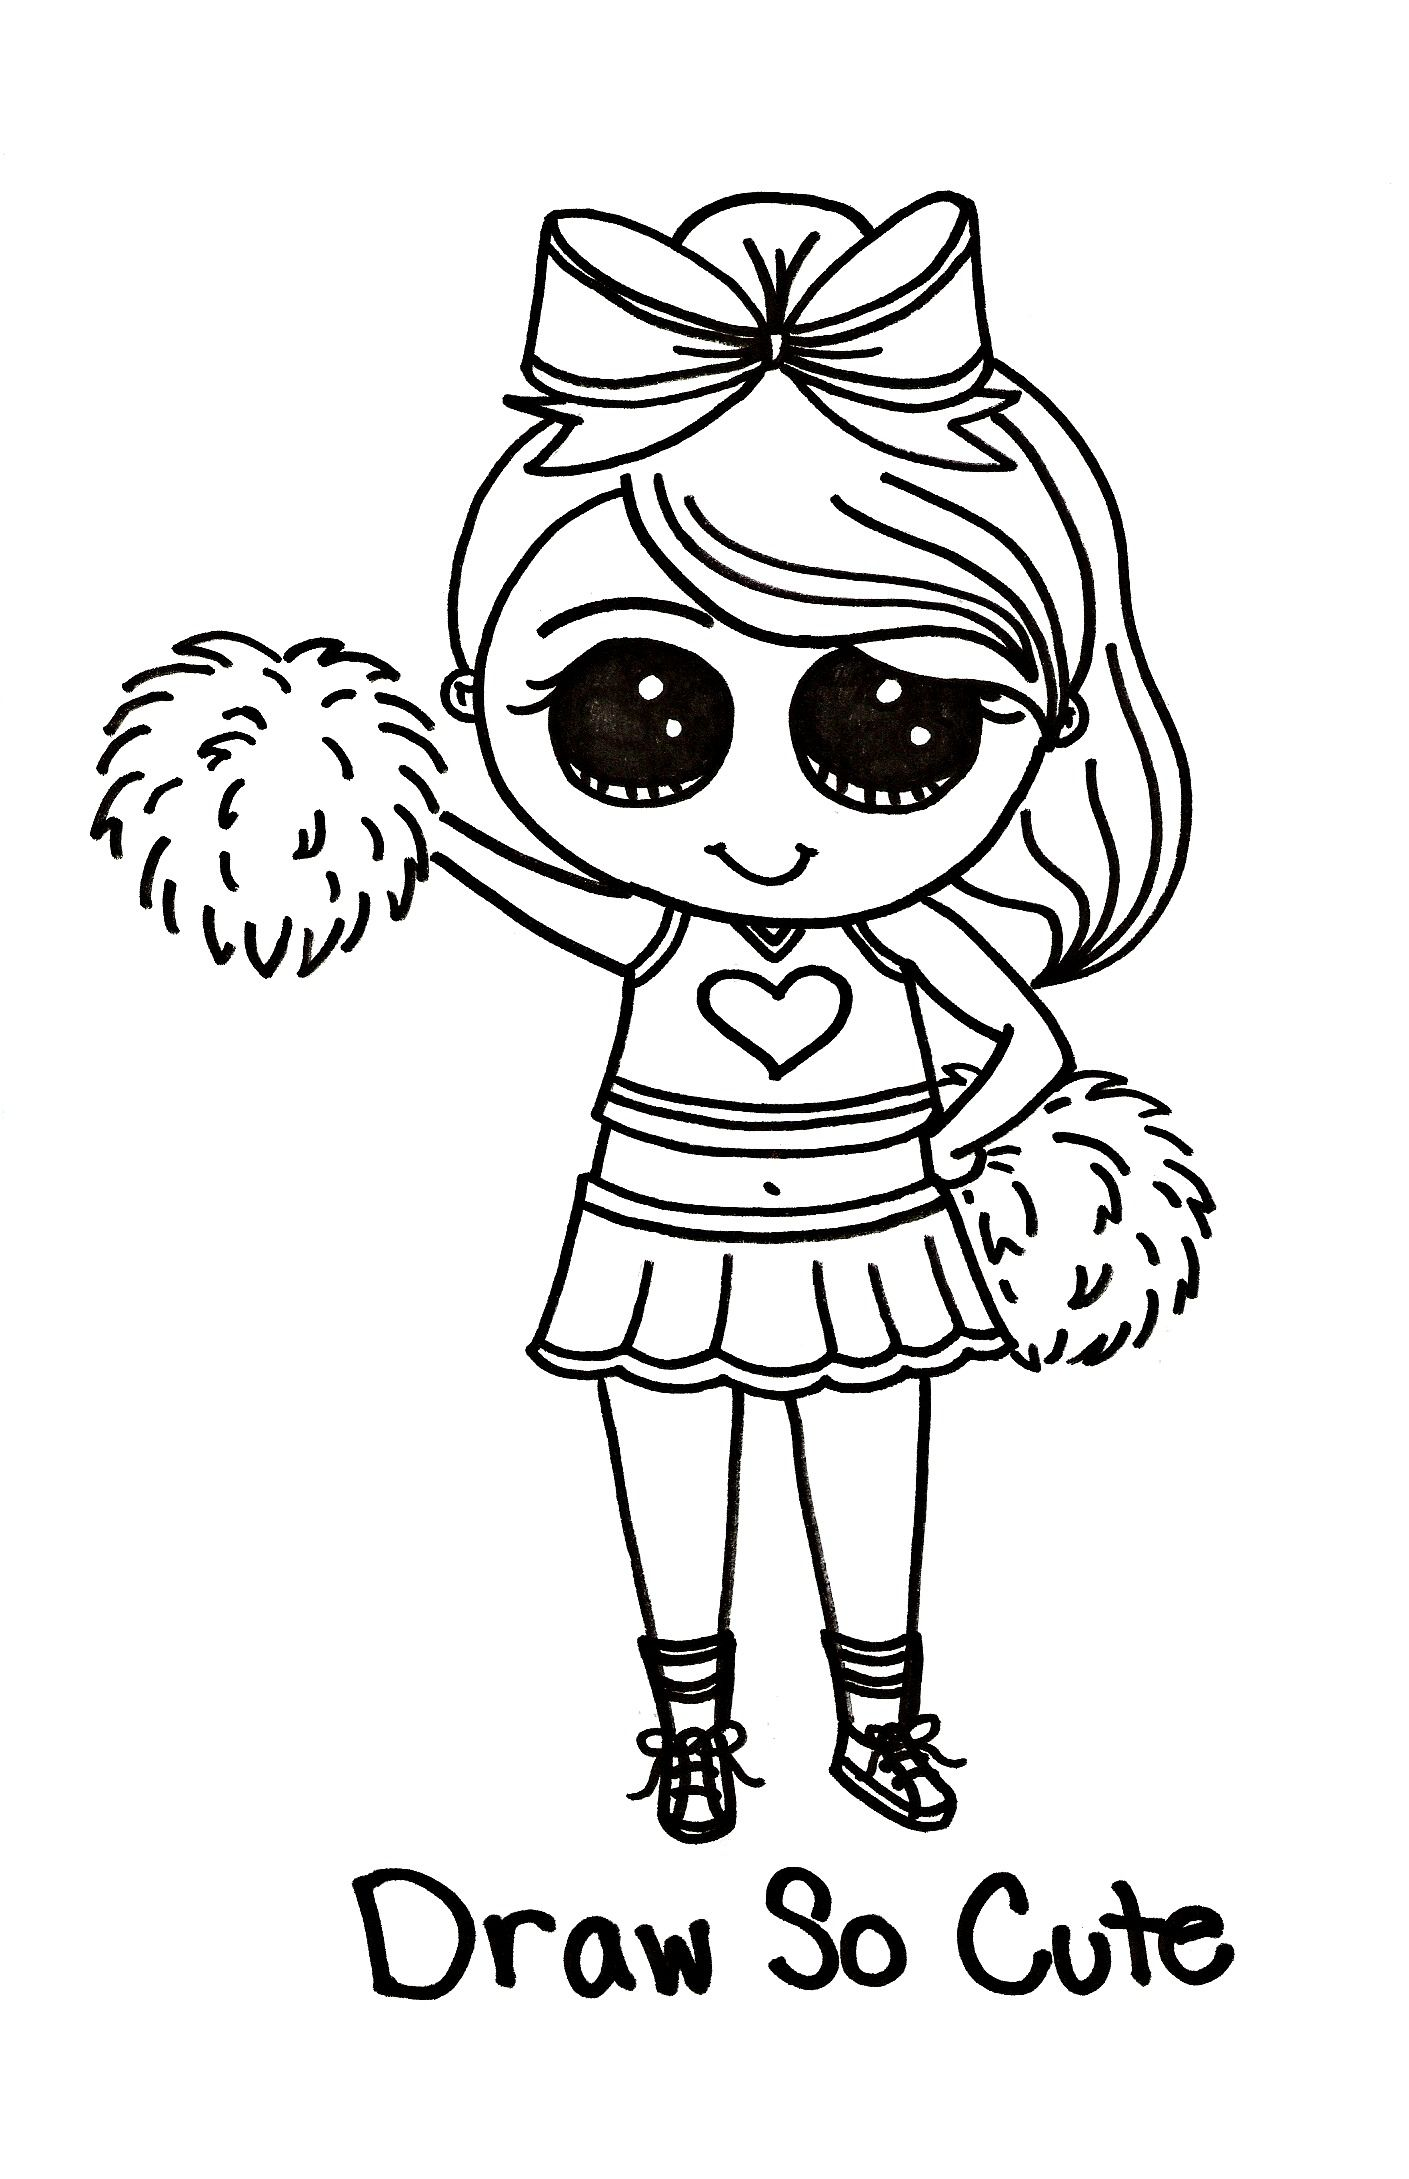 Draw So Cute Cheerleader - Tipsy Scribbles - A picture says a